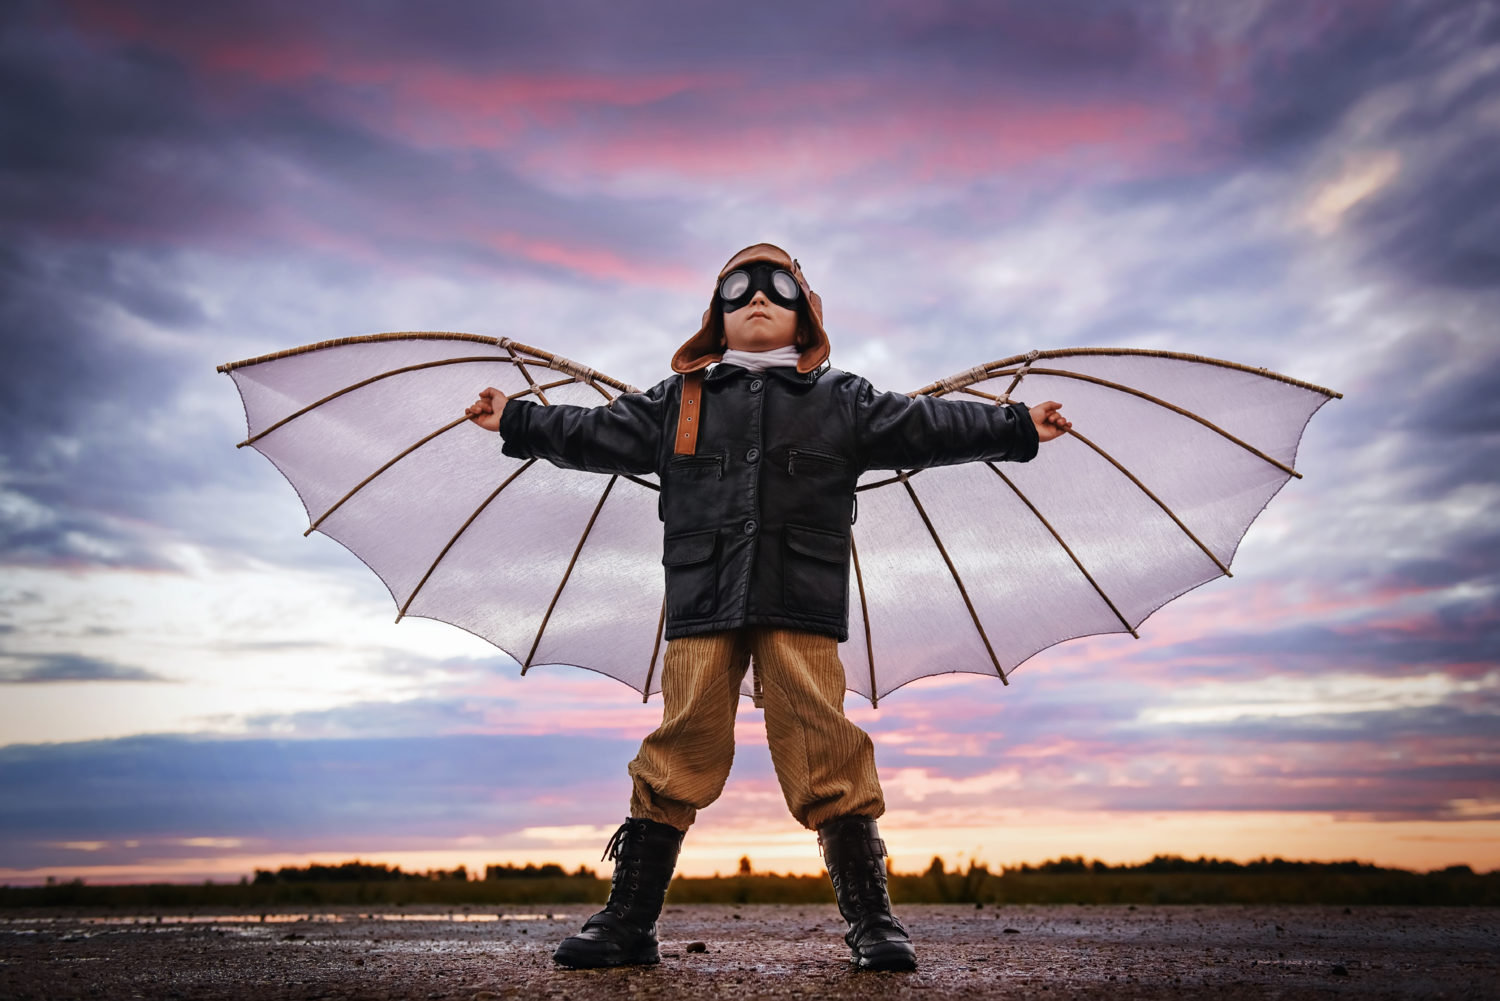 Little boy in retro pilot outfit with wings